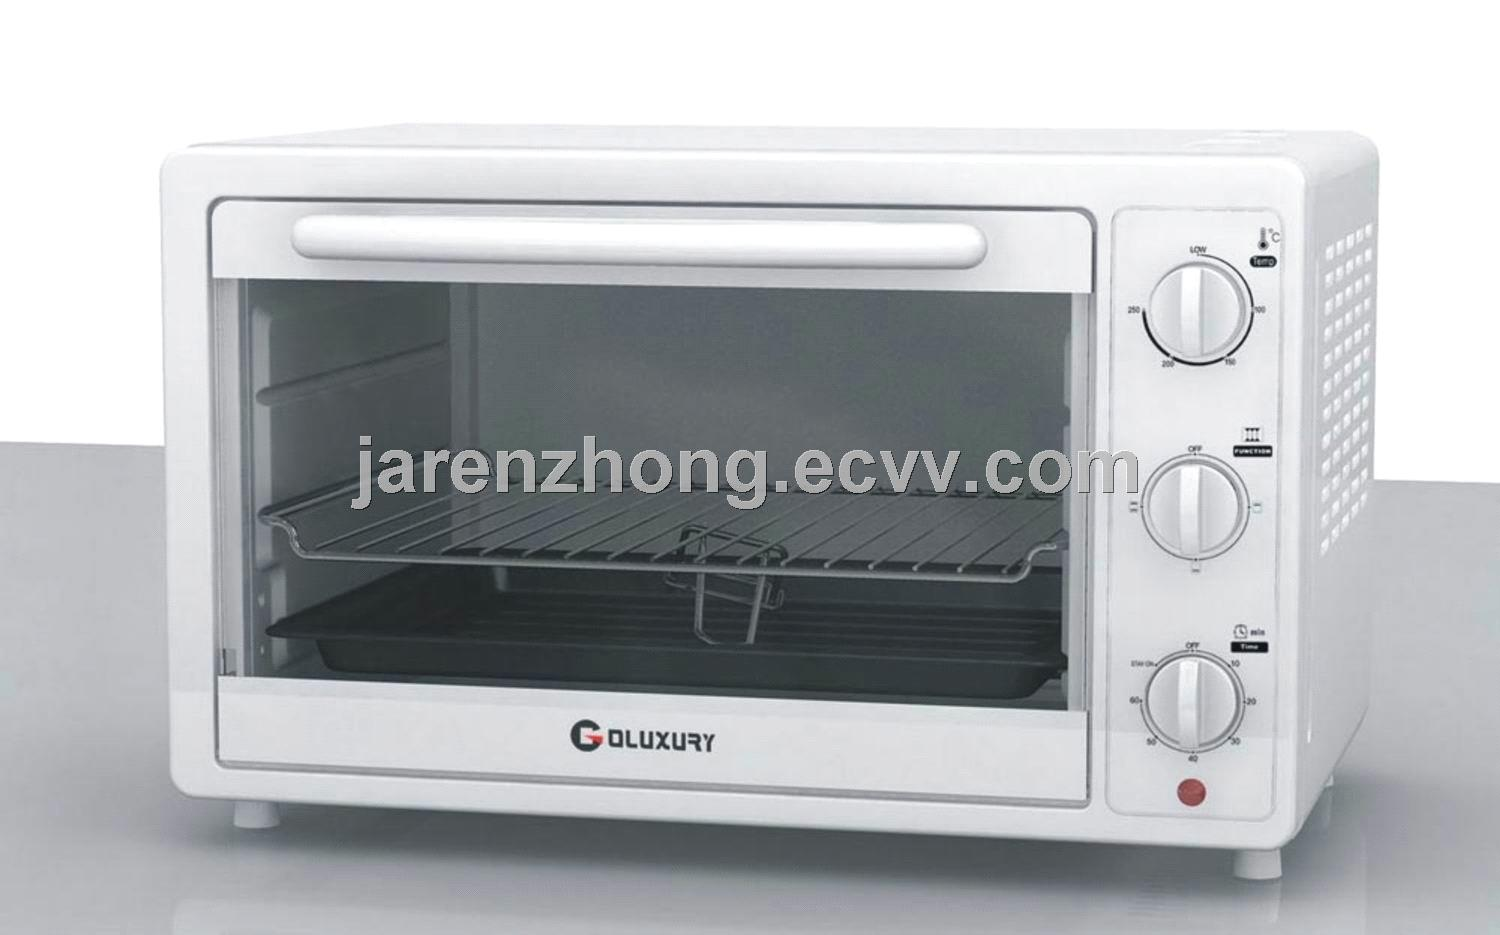 Electric Oven How To Bake A Cake In Neff U15m52n3gb Wiring Instructions Images Of